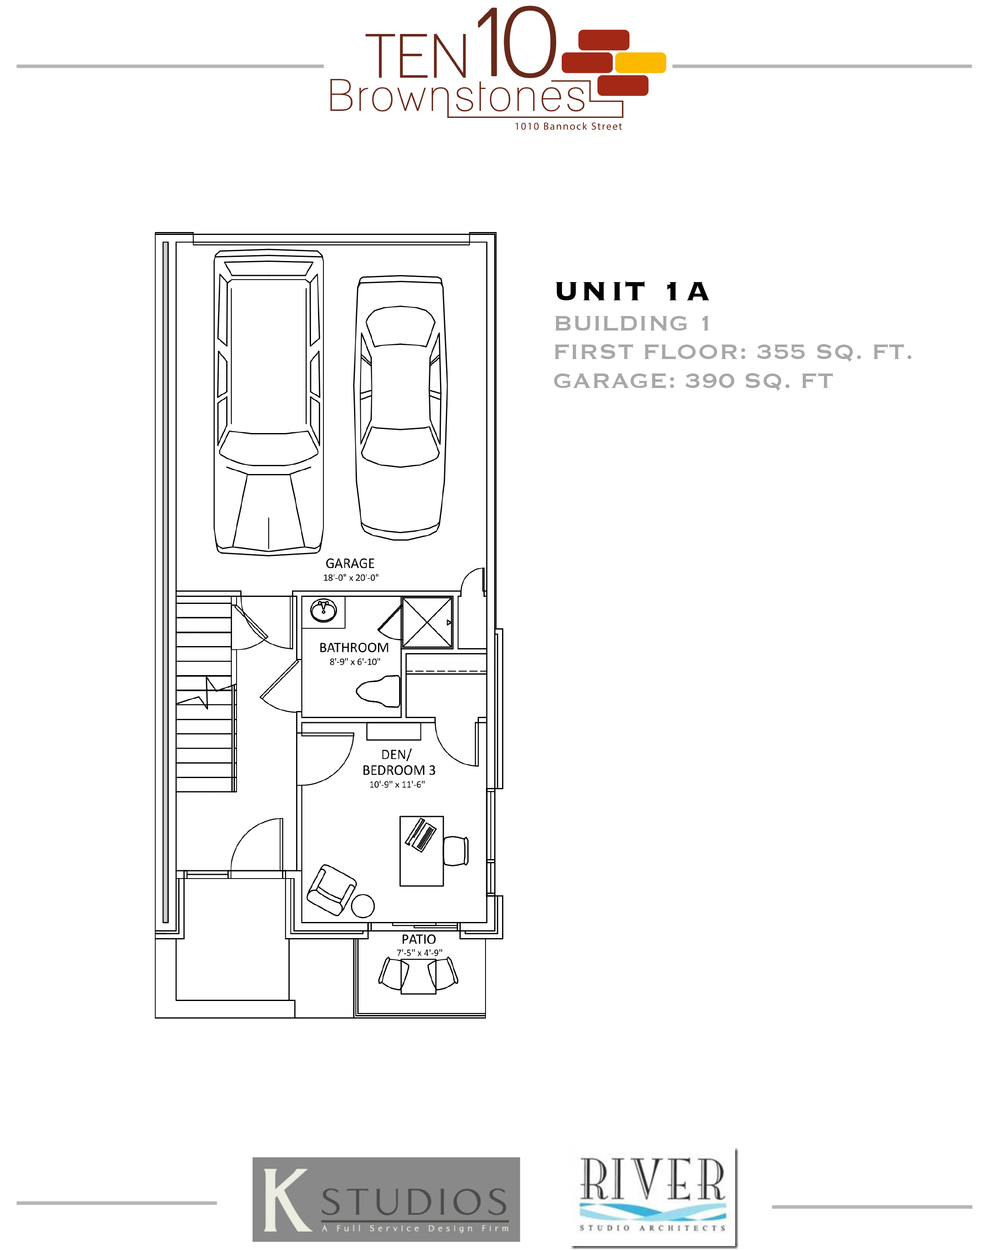 Click to view & download Unit 1A floor plan